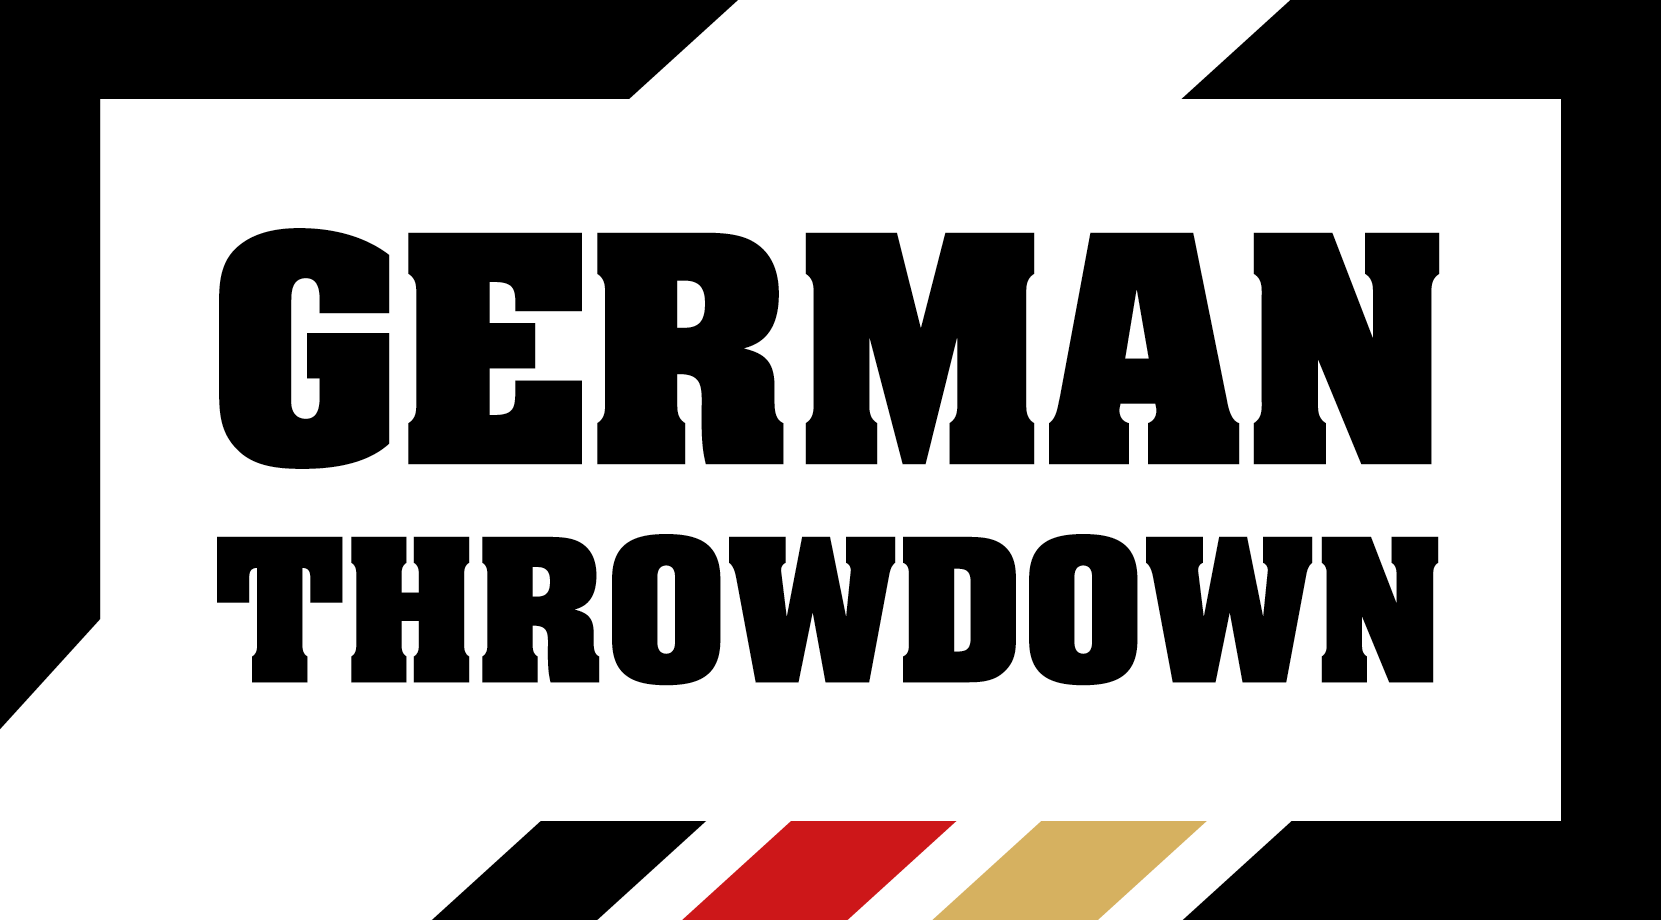 German Throwdown